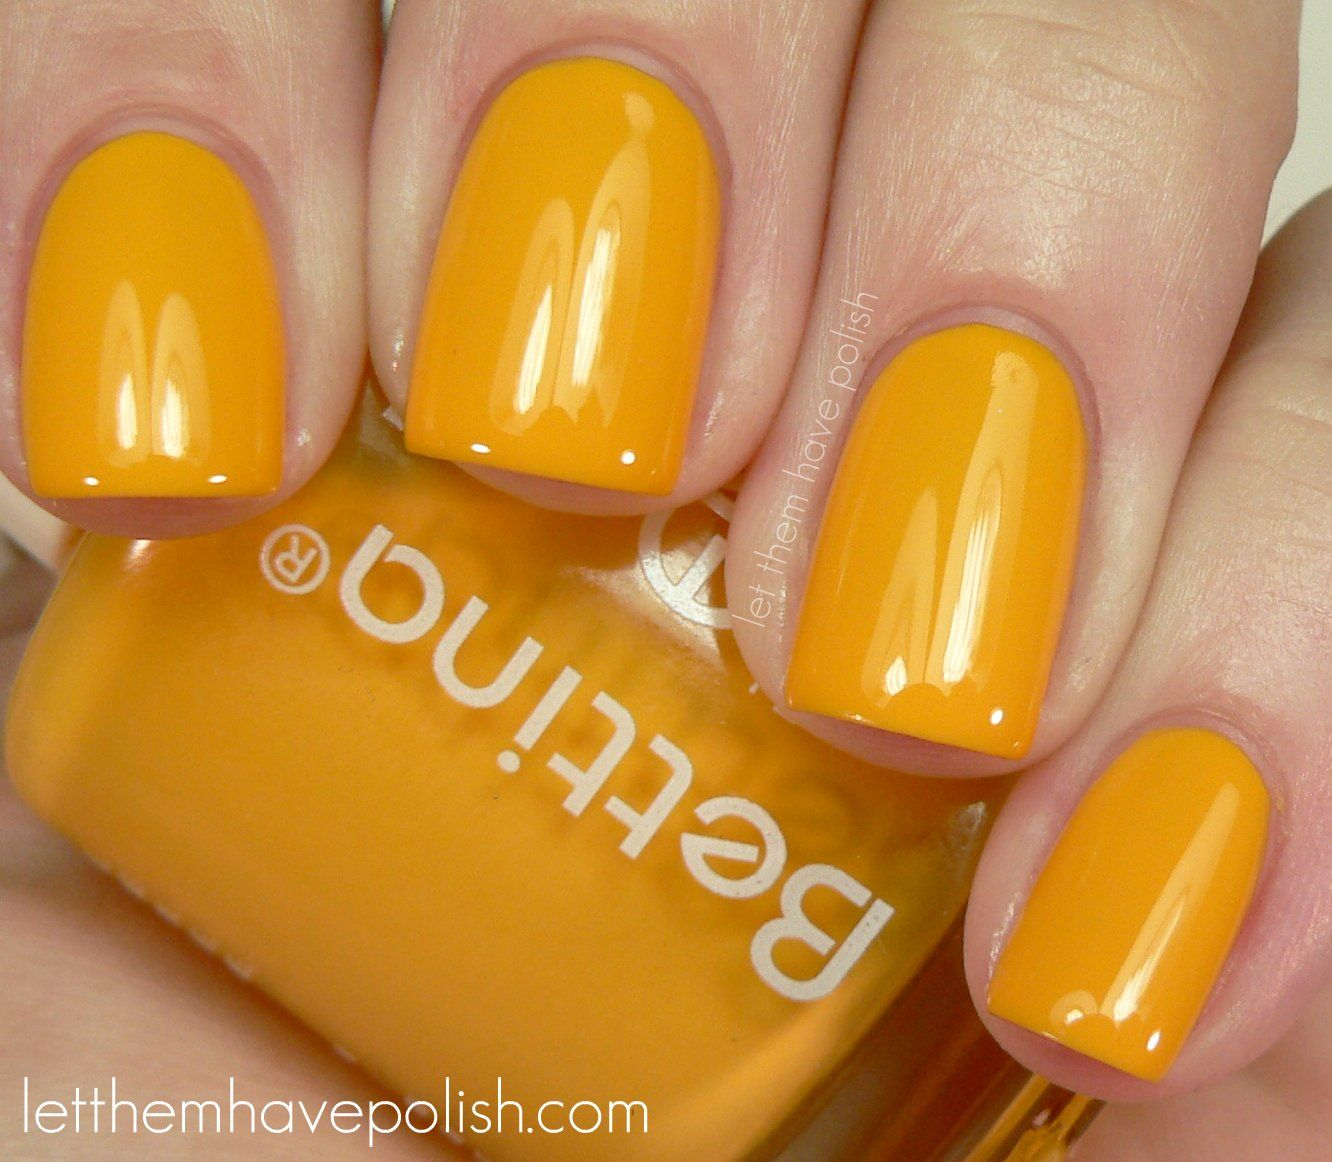 Dark Yellow Nails.....such a beautiful shade of yellow | I LOVE My ...